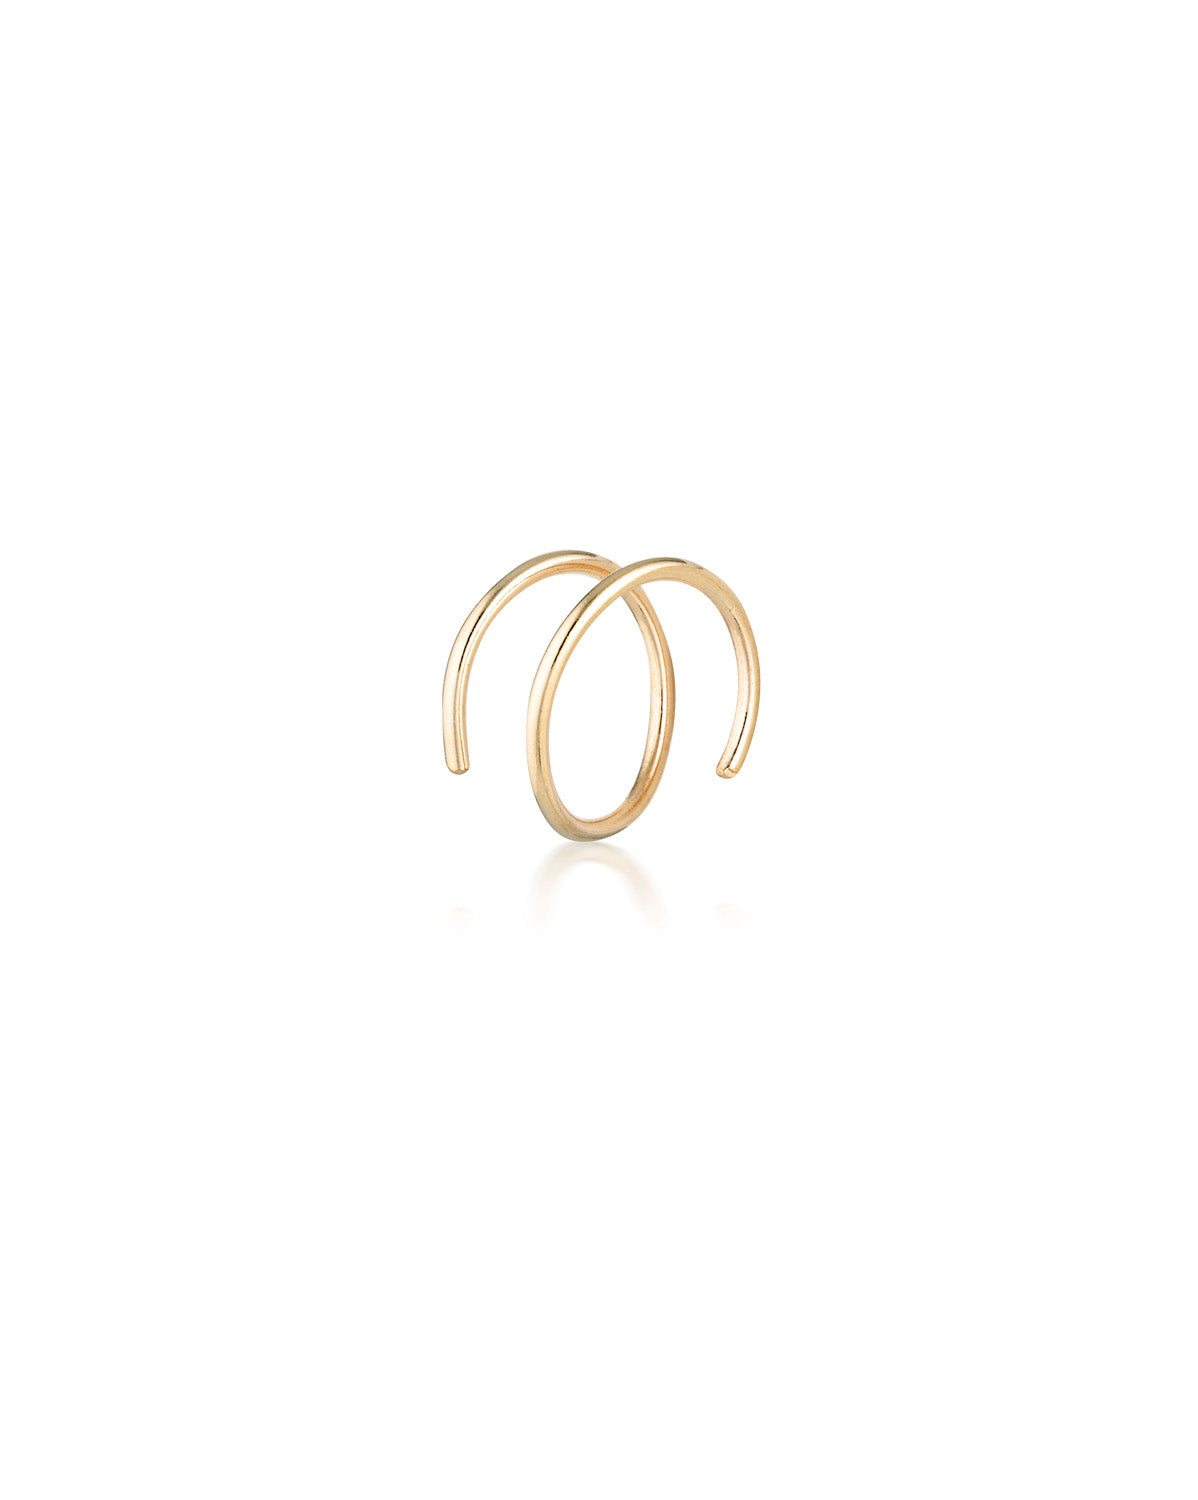 (Single) Illusion Spiral Hoop Earring | 9k Gold